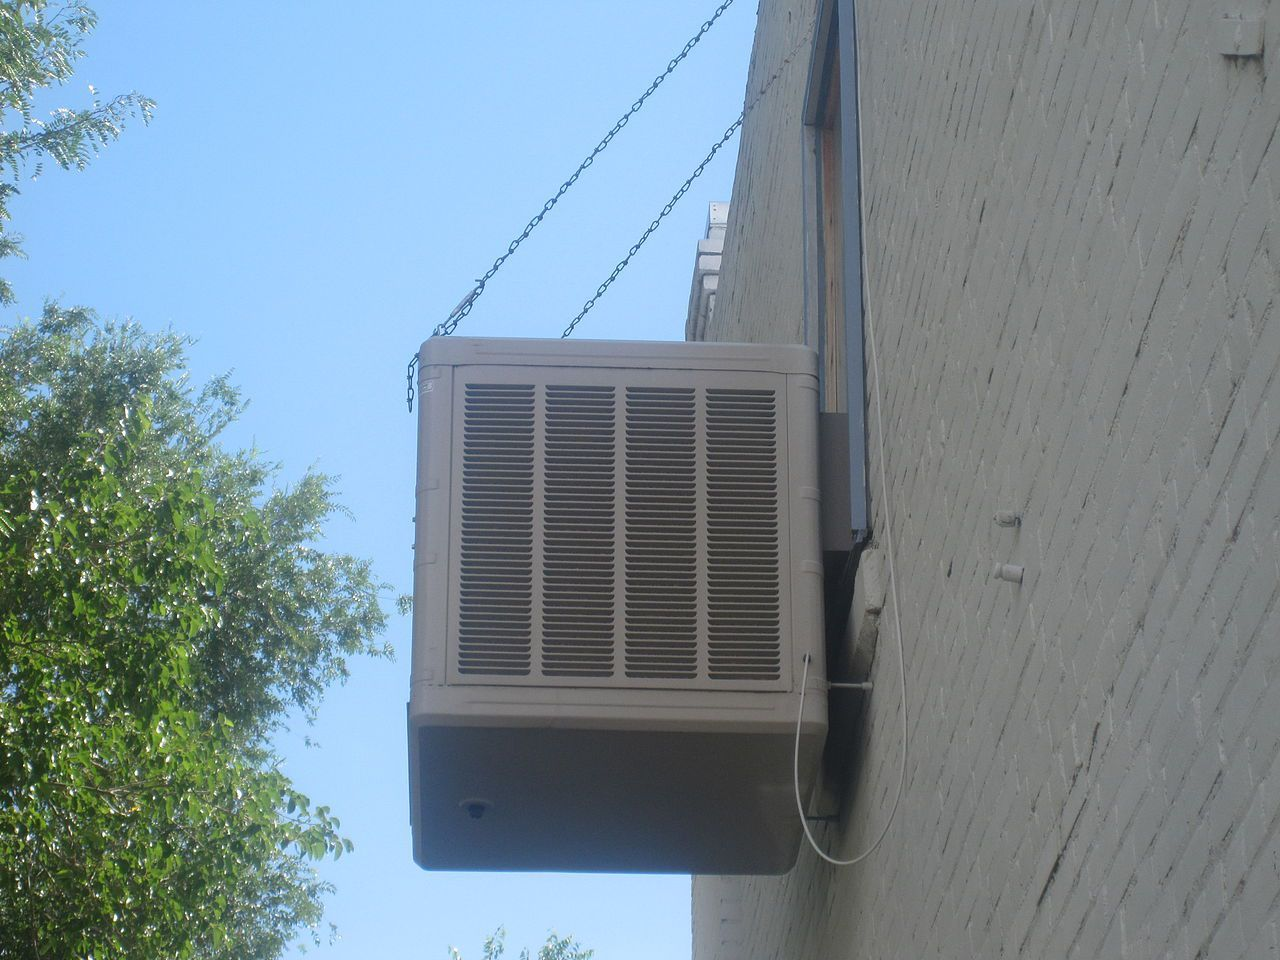 Understanding the Parts of an Evaporative Cooler